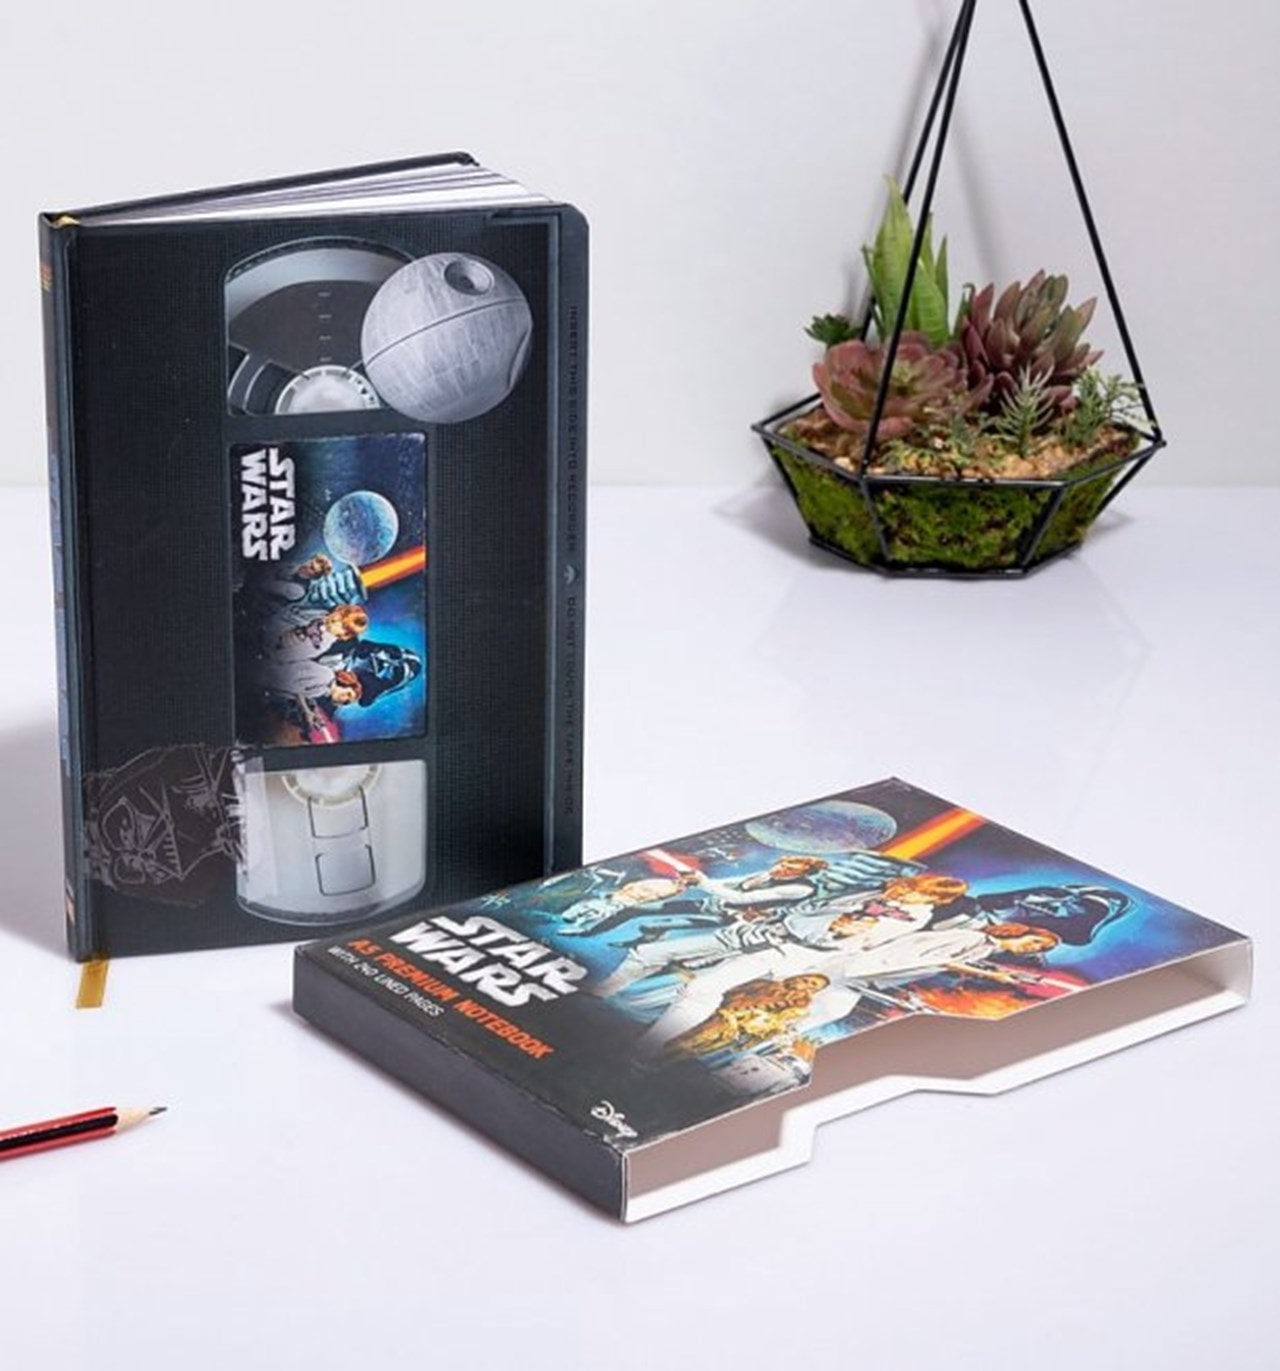 Star Wars (A New Hope) VHS Premium A5 Notebook - 1